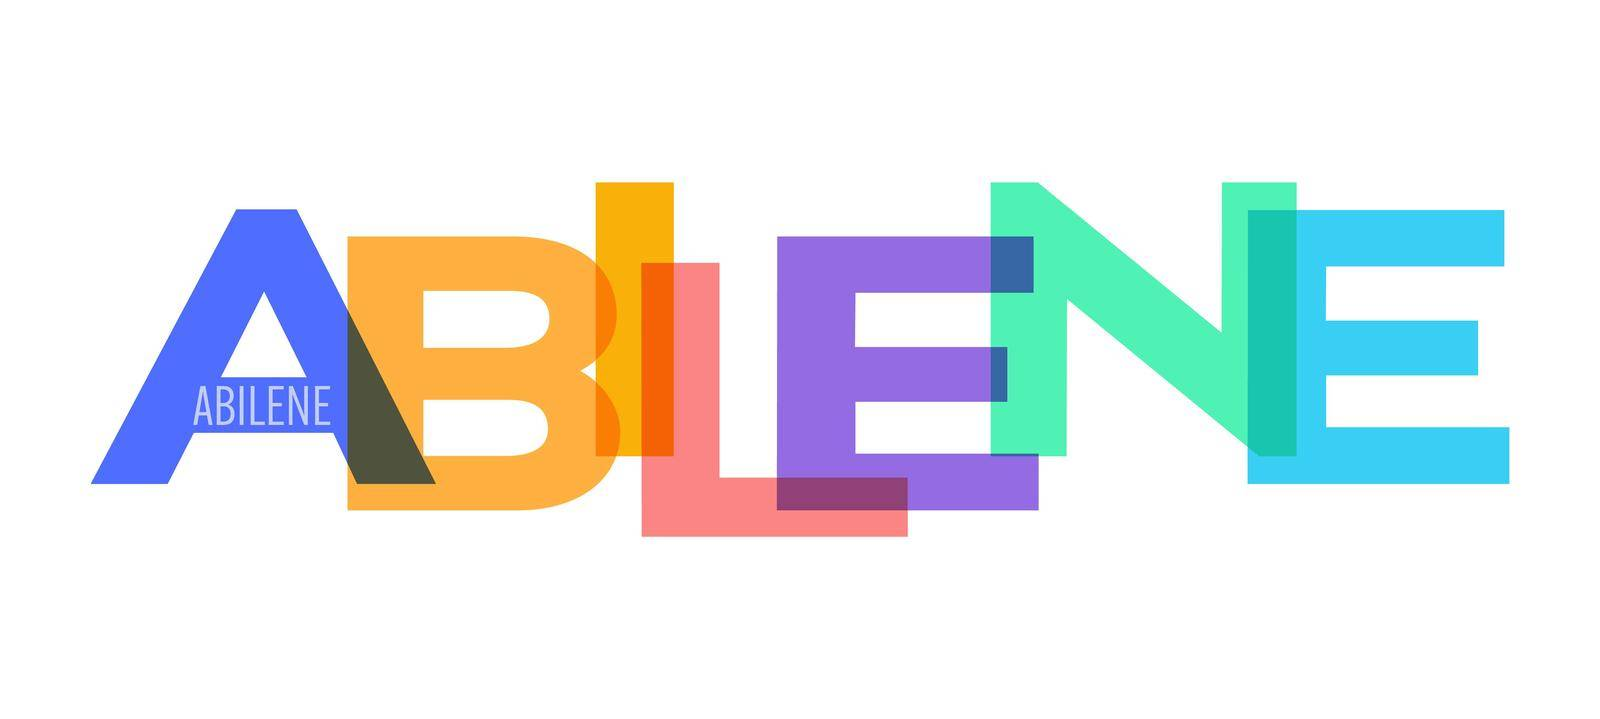 ABILENE. The name of the city on a white background. Vector design template for poster, postcard, banner. Vector illustration.